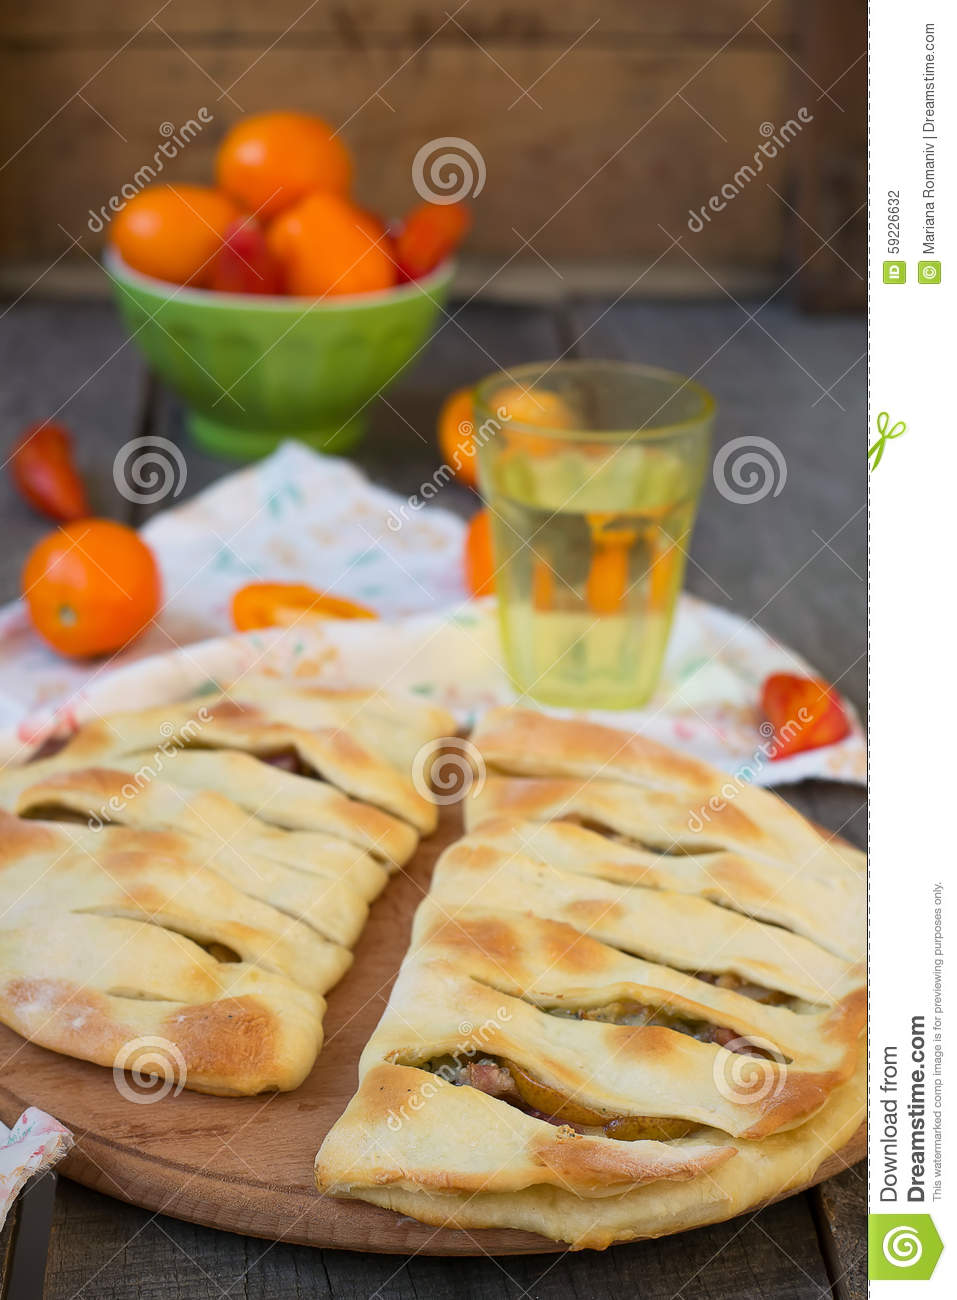 ... similar stock images of ` Focaccia with blue cheese, pear and bacon